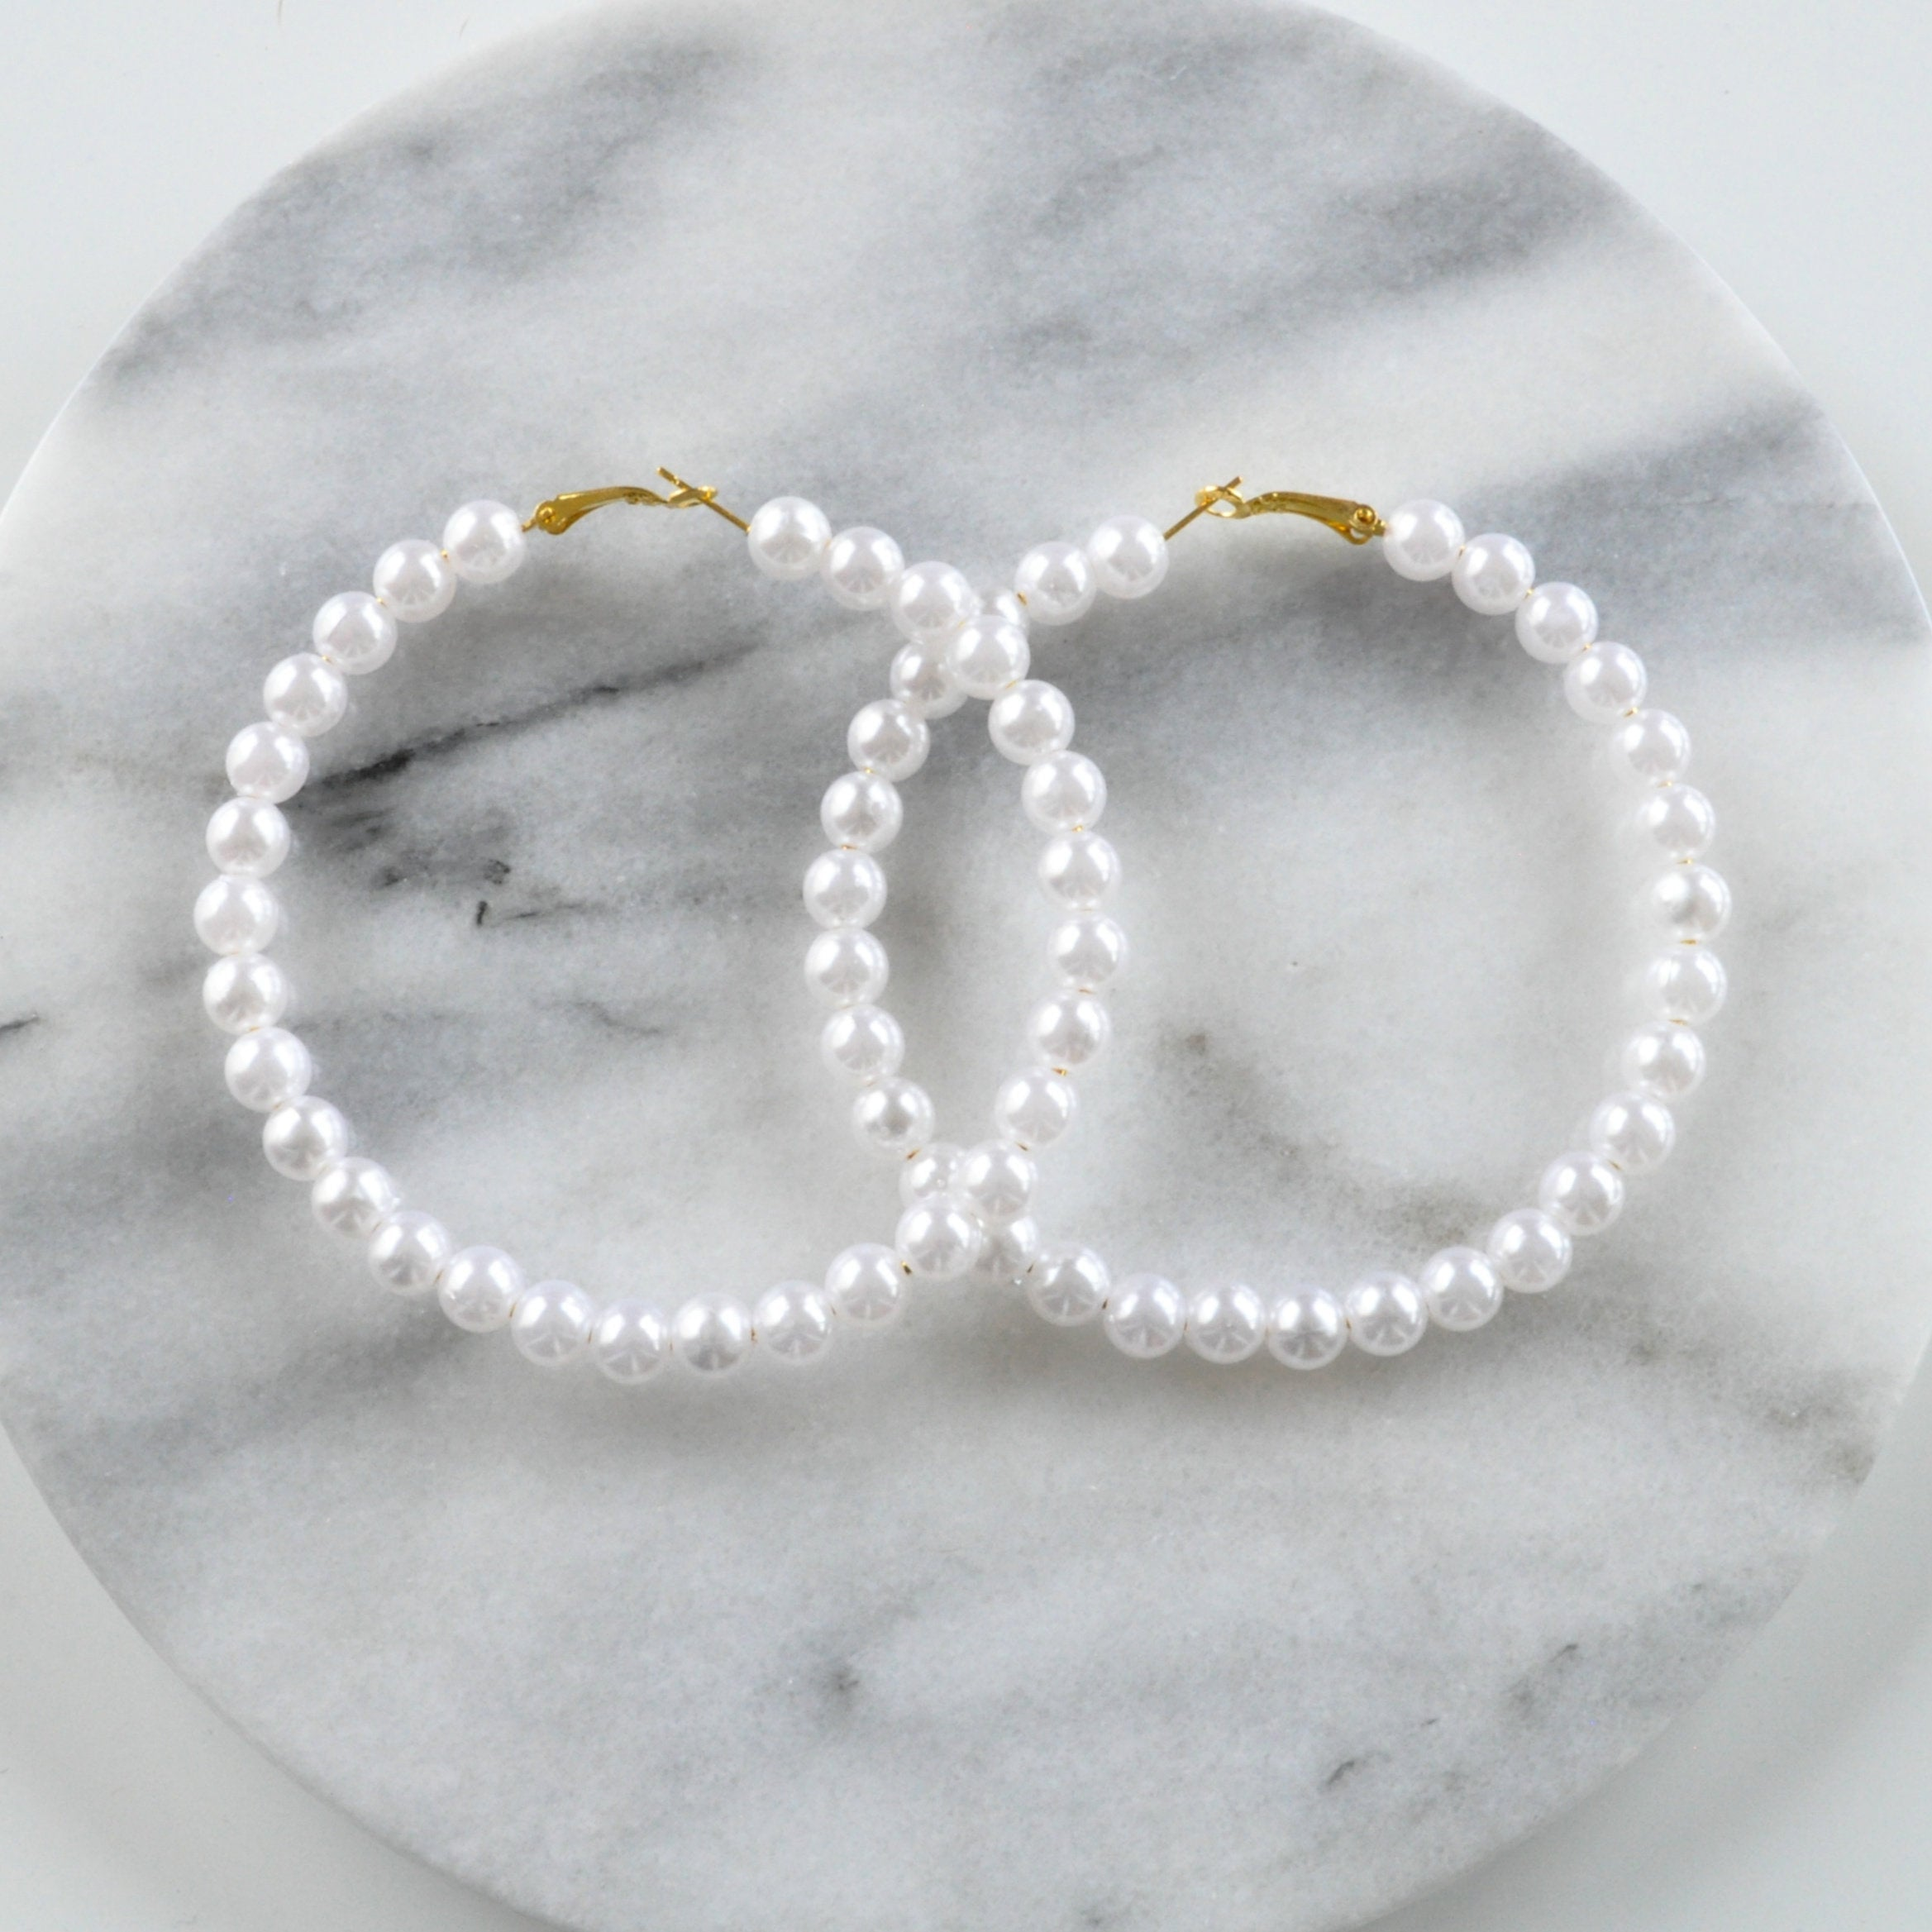 Libby & Smee huge pearl hoops